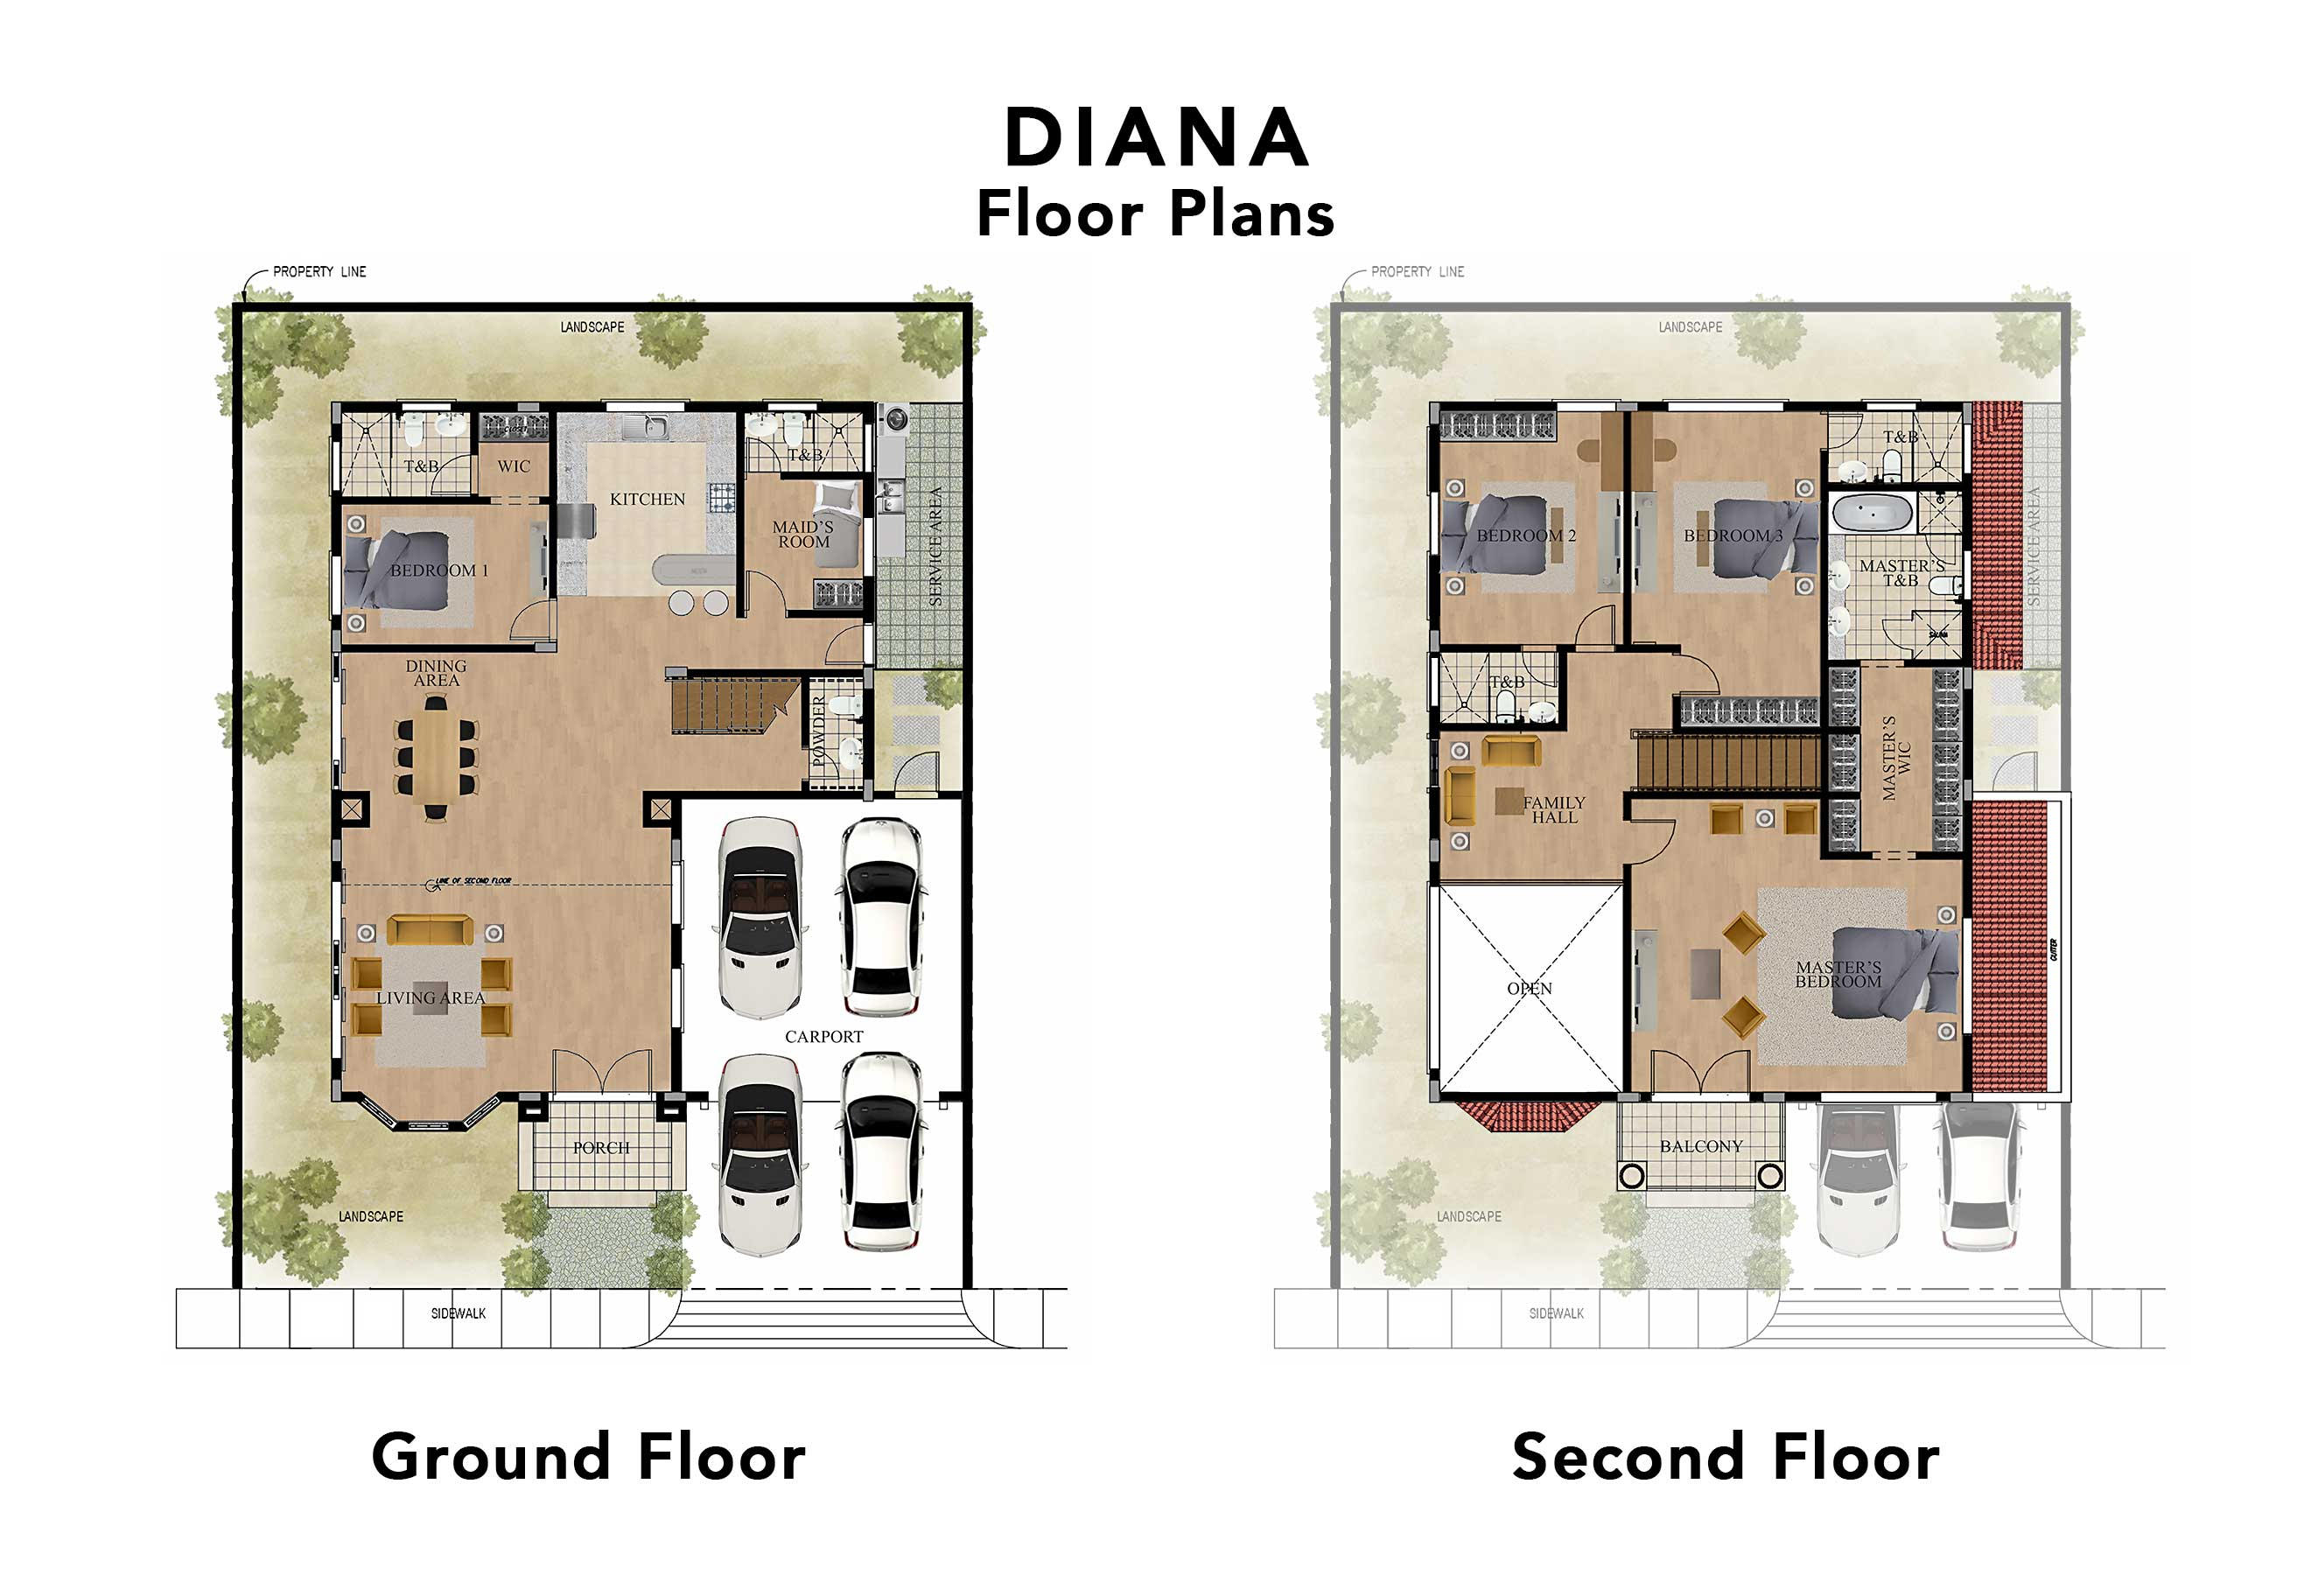 Diana Floor Plans UPDATED 20200818 (saved for web)